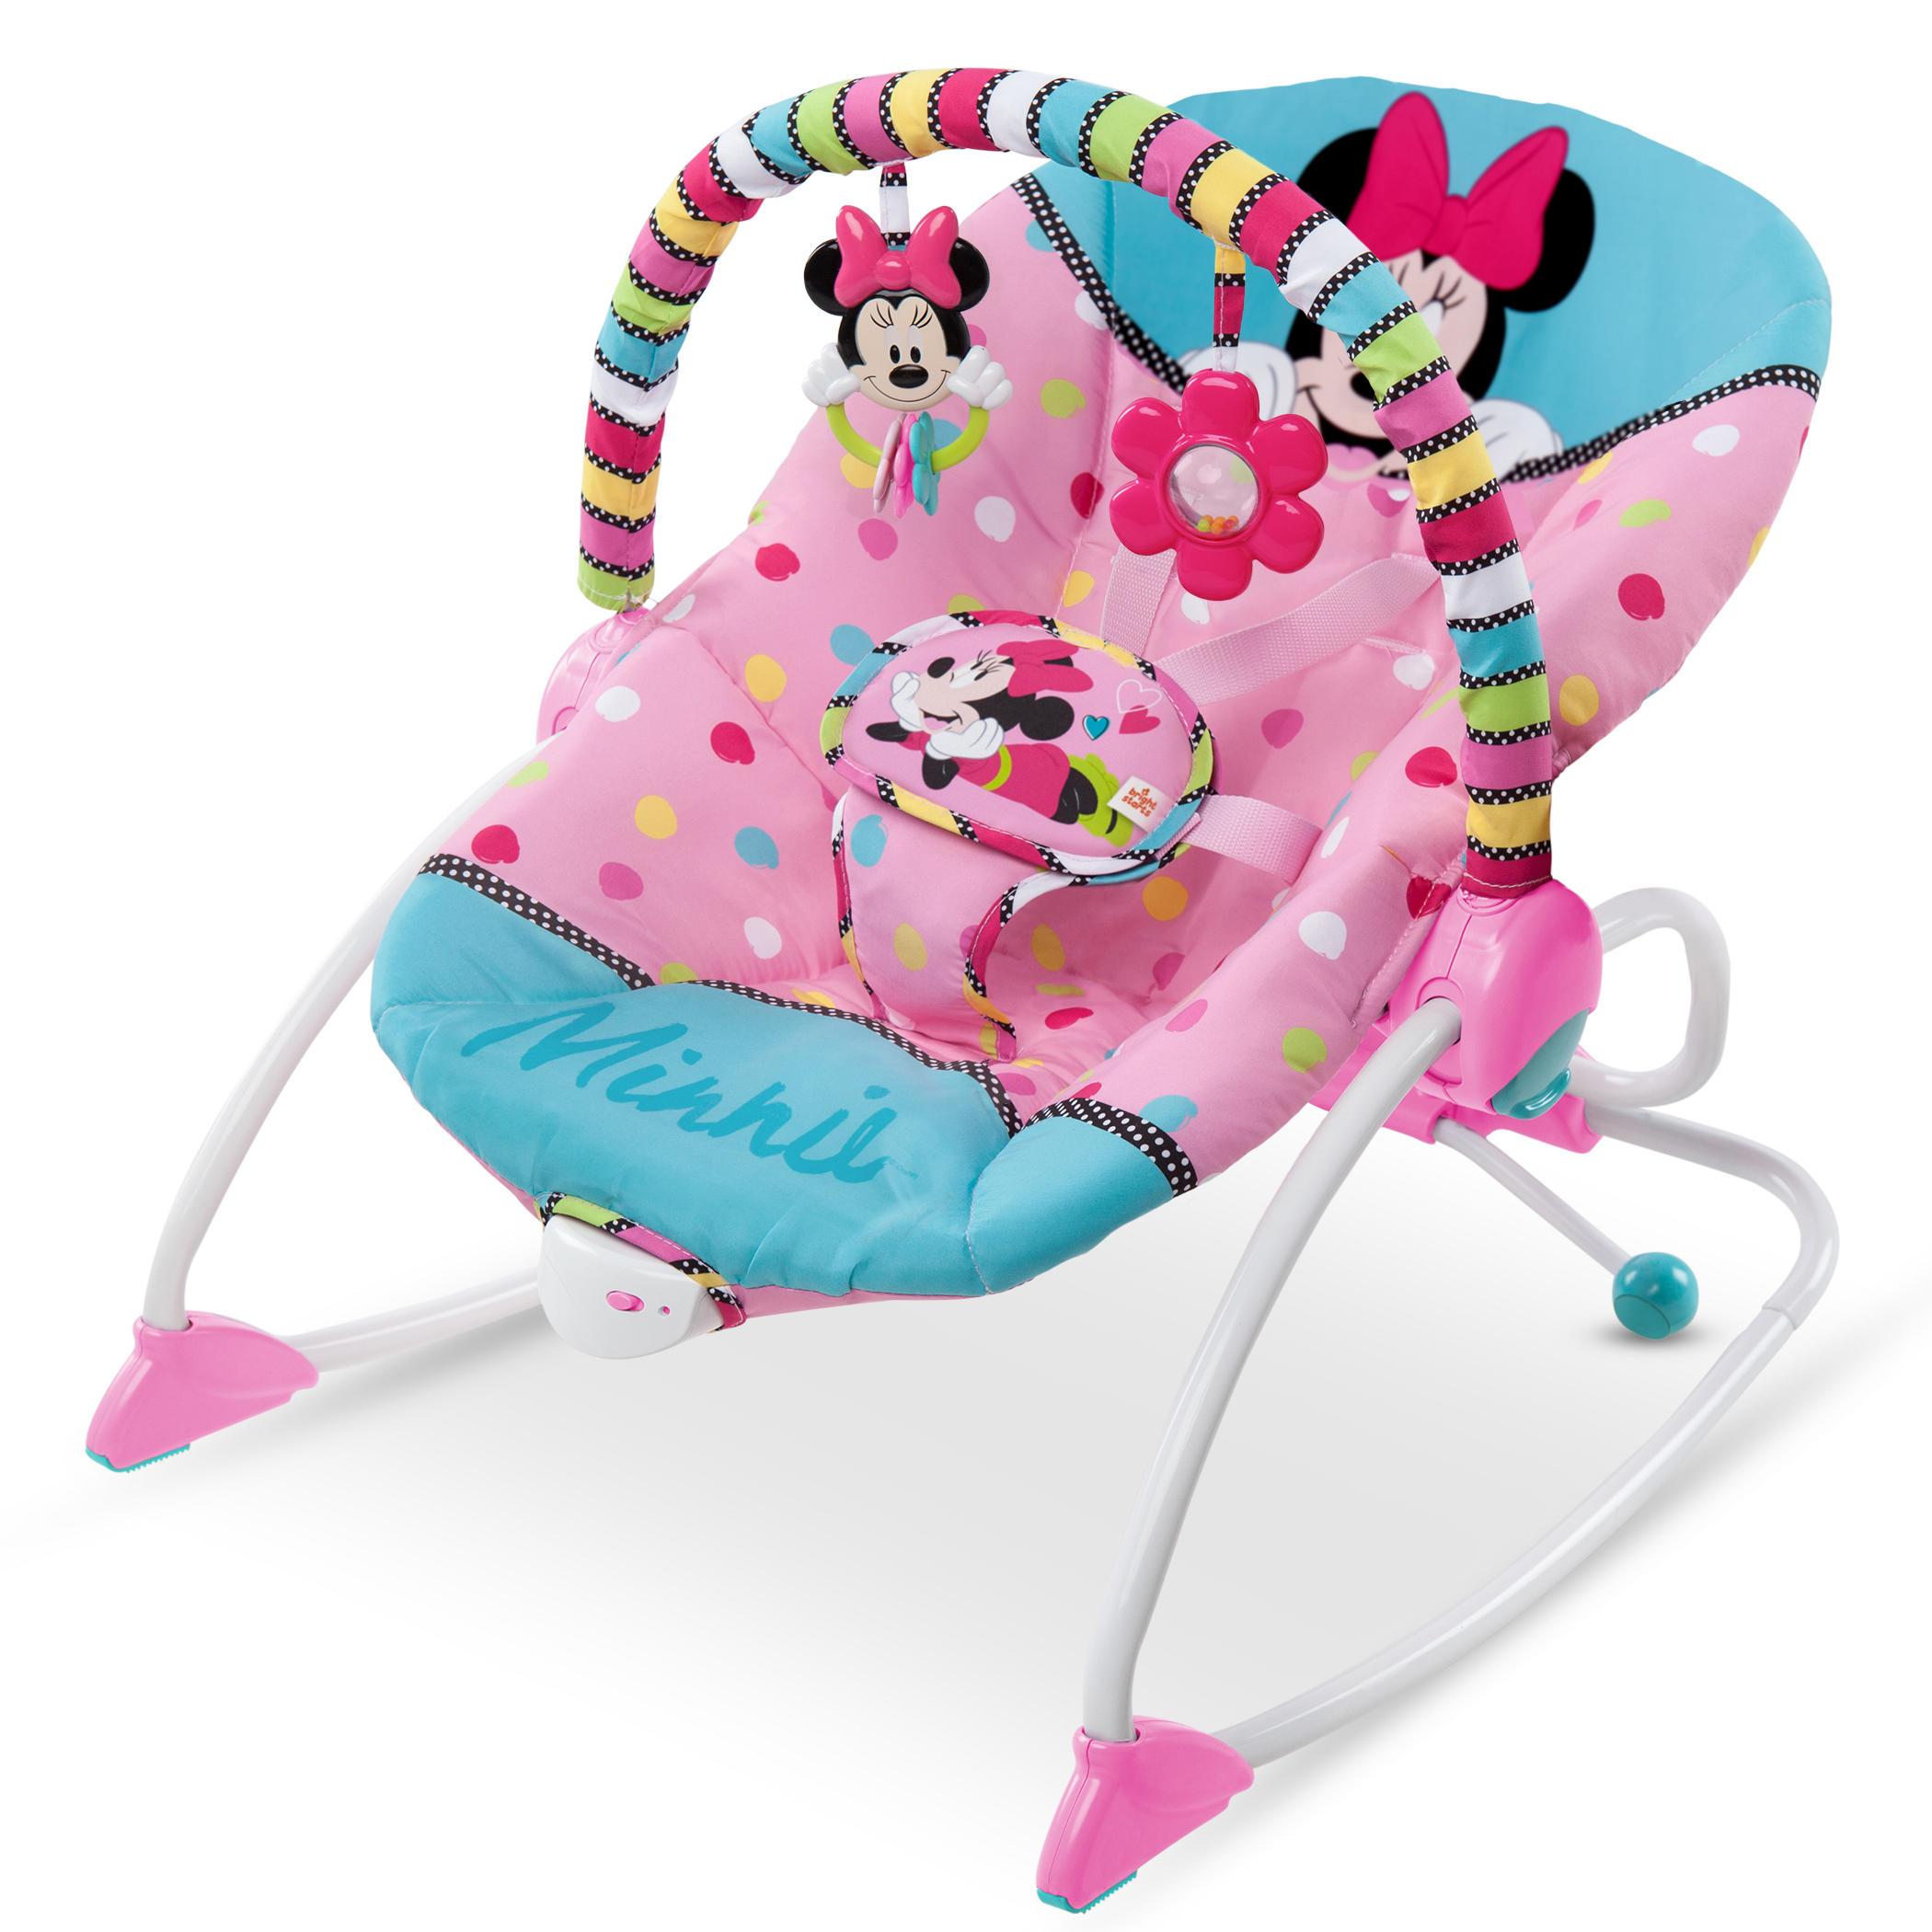 Attirant Disney Baby Minnie Mouse Peekaboo Infant To Toddler Rocker   Walmart.com